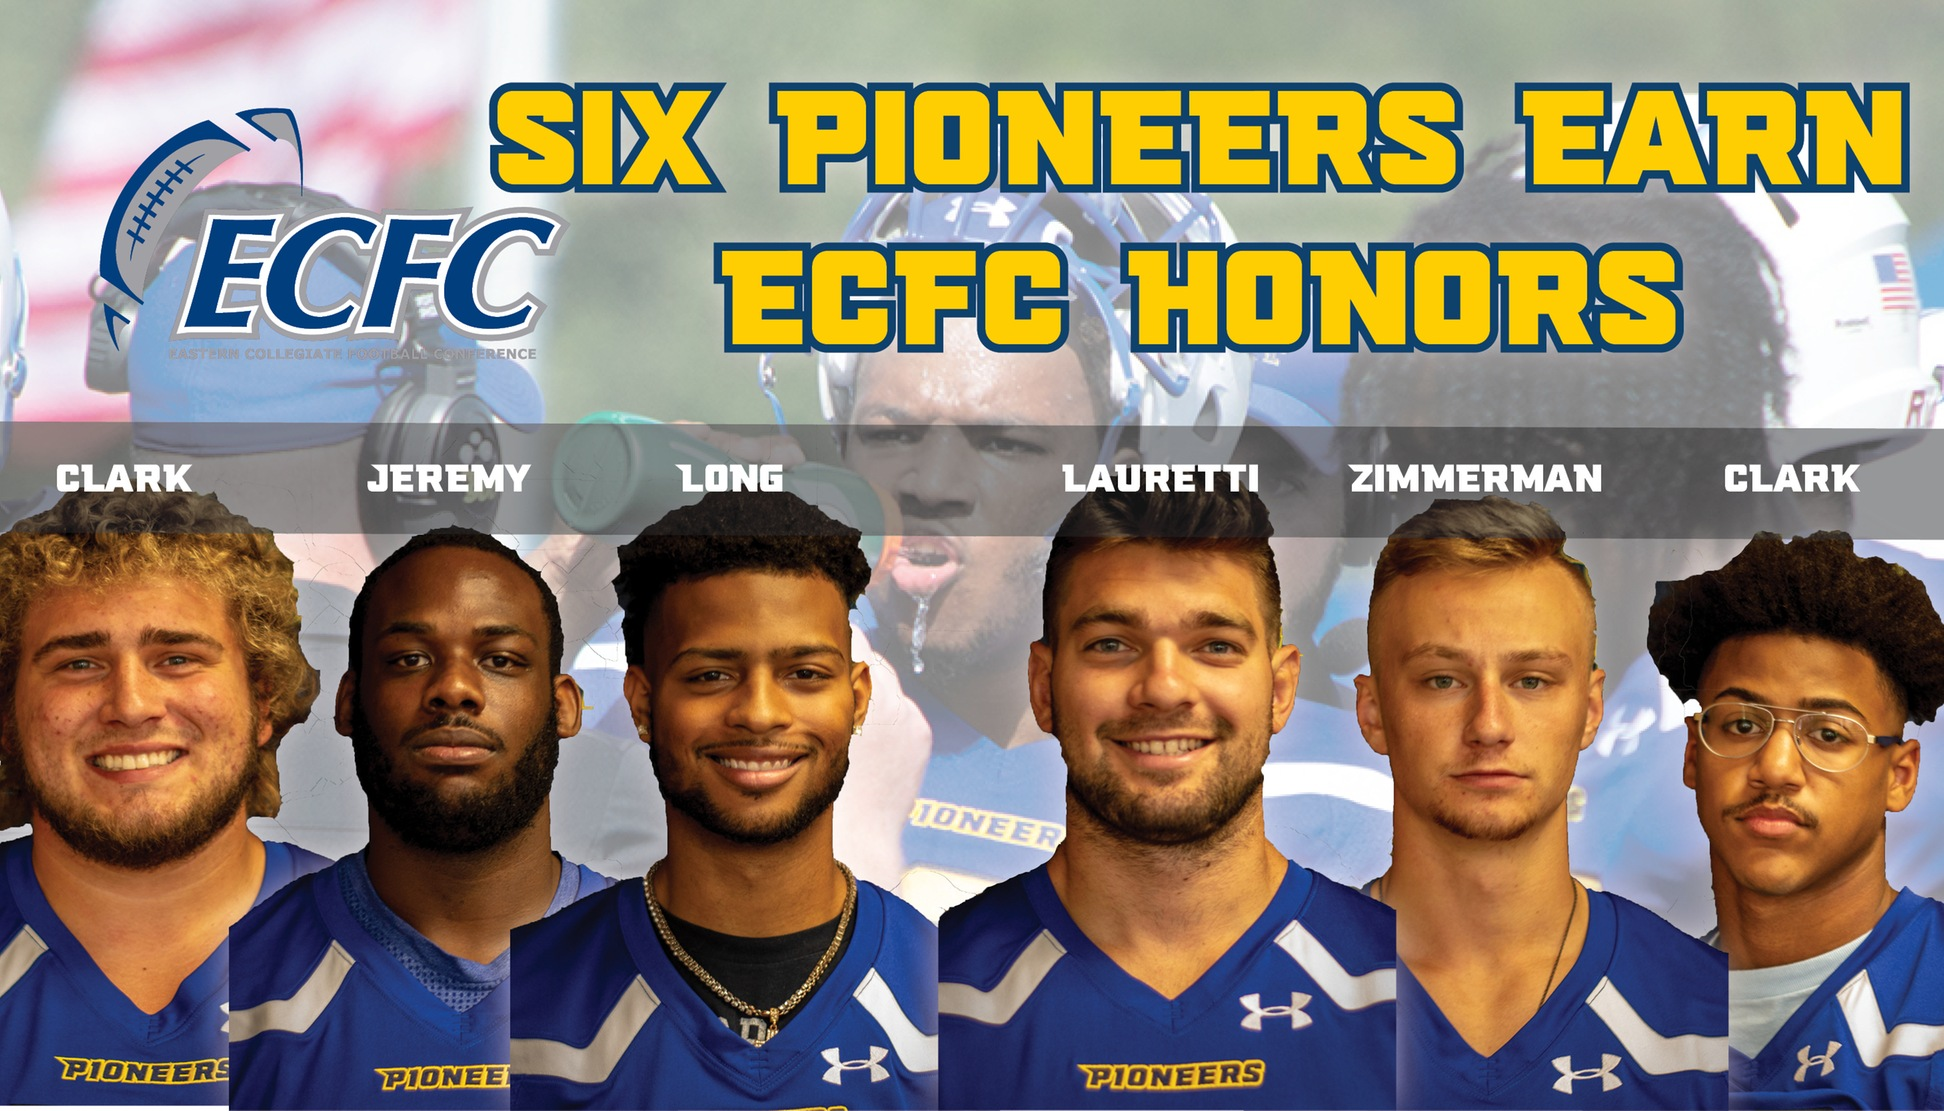 Six Pioneers Named All-ECFC